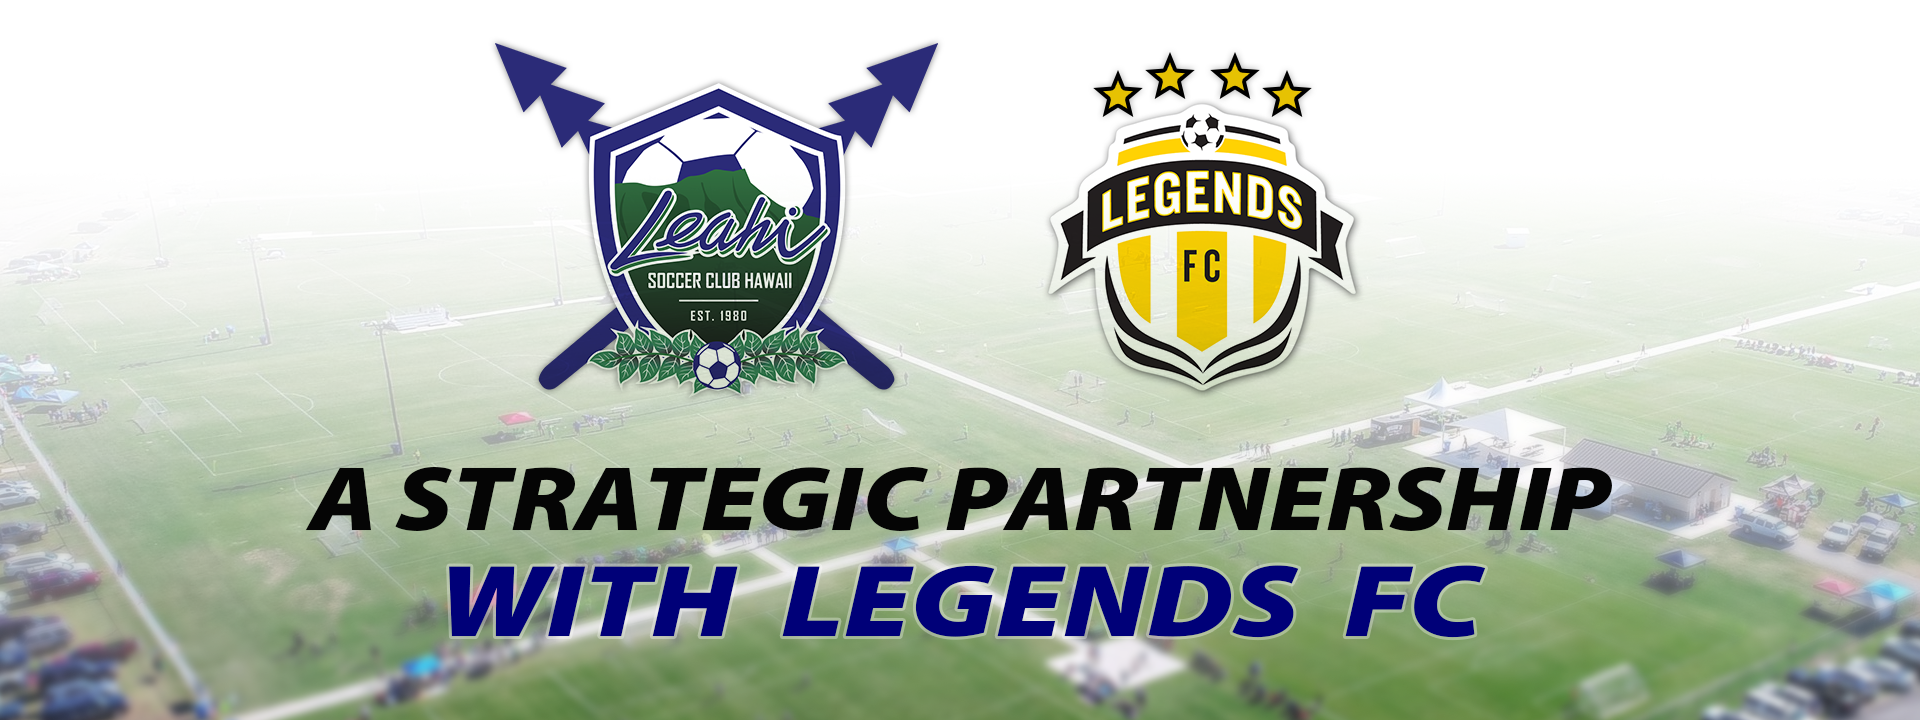 Leahi Partners With Legends FC